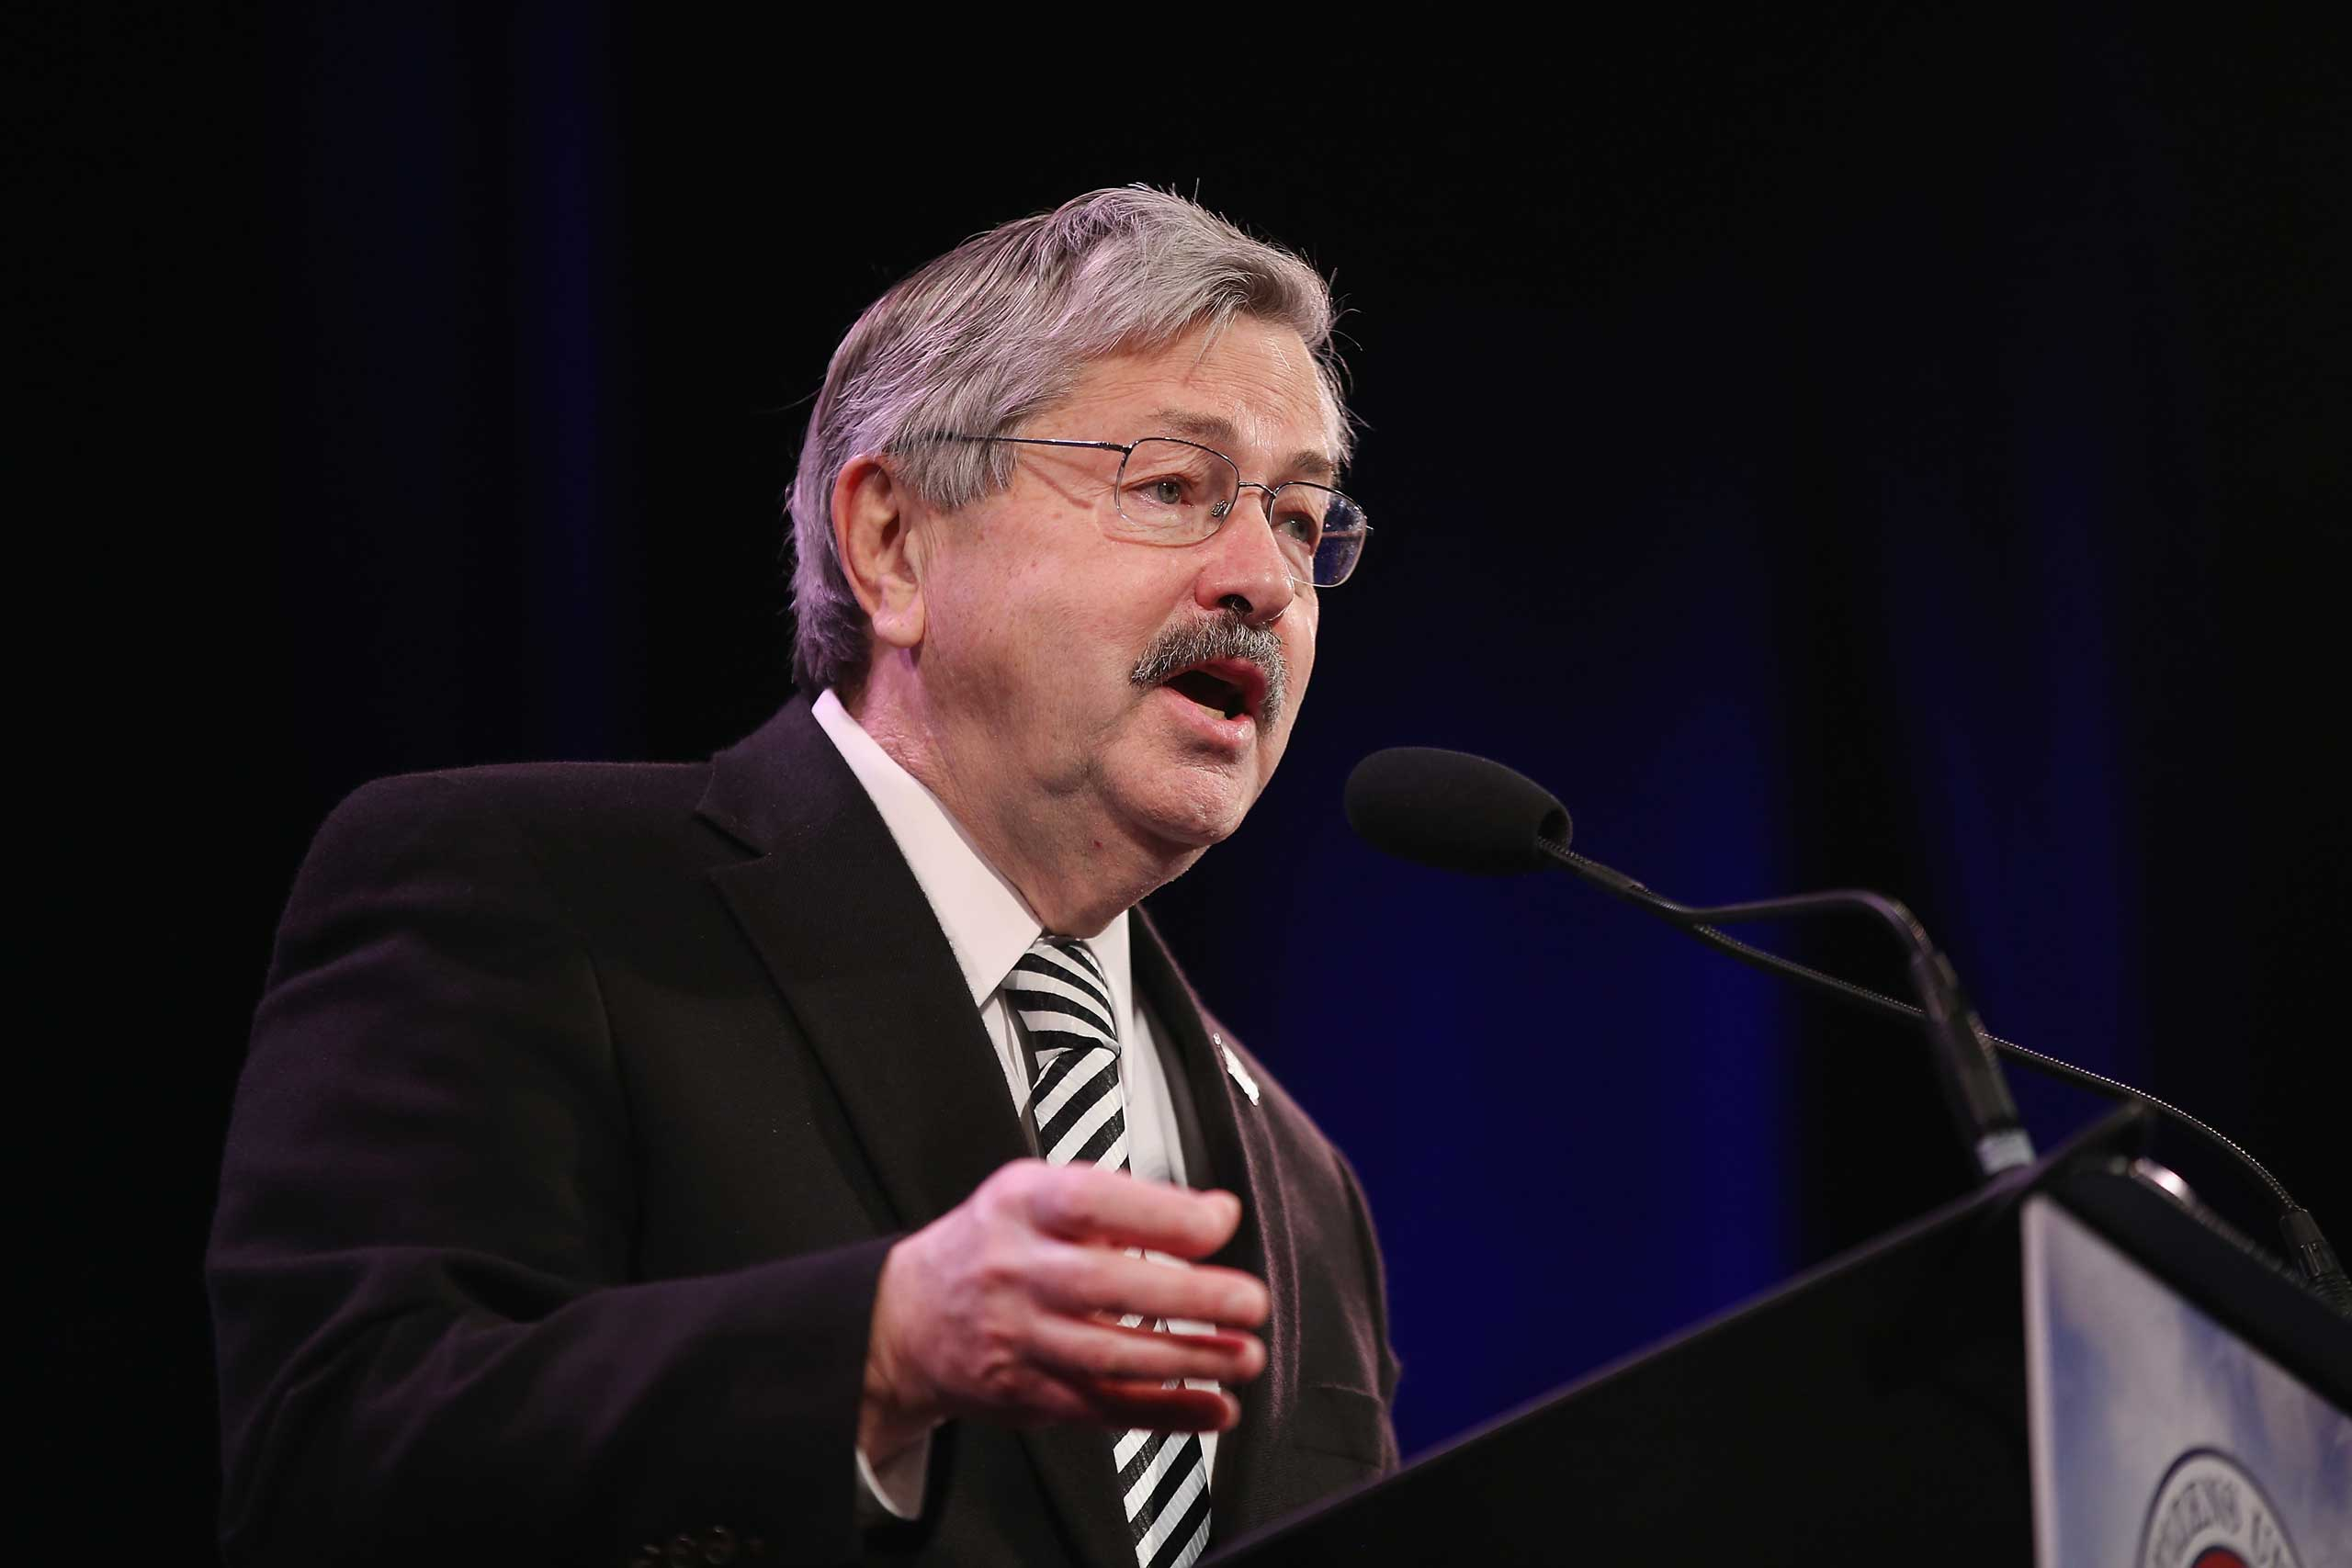 Iowa Governor Terry Branstad speaks to guests  at the Iowa Freedom Summit in Des Moines, Iowa, on Jan. 24, 2015 .